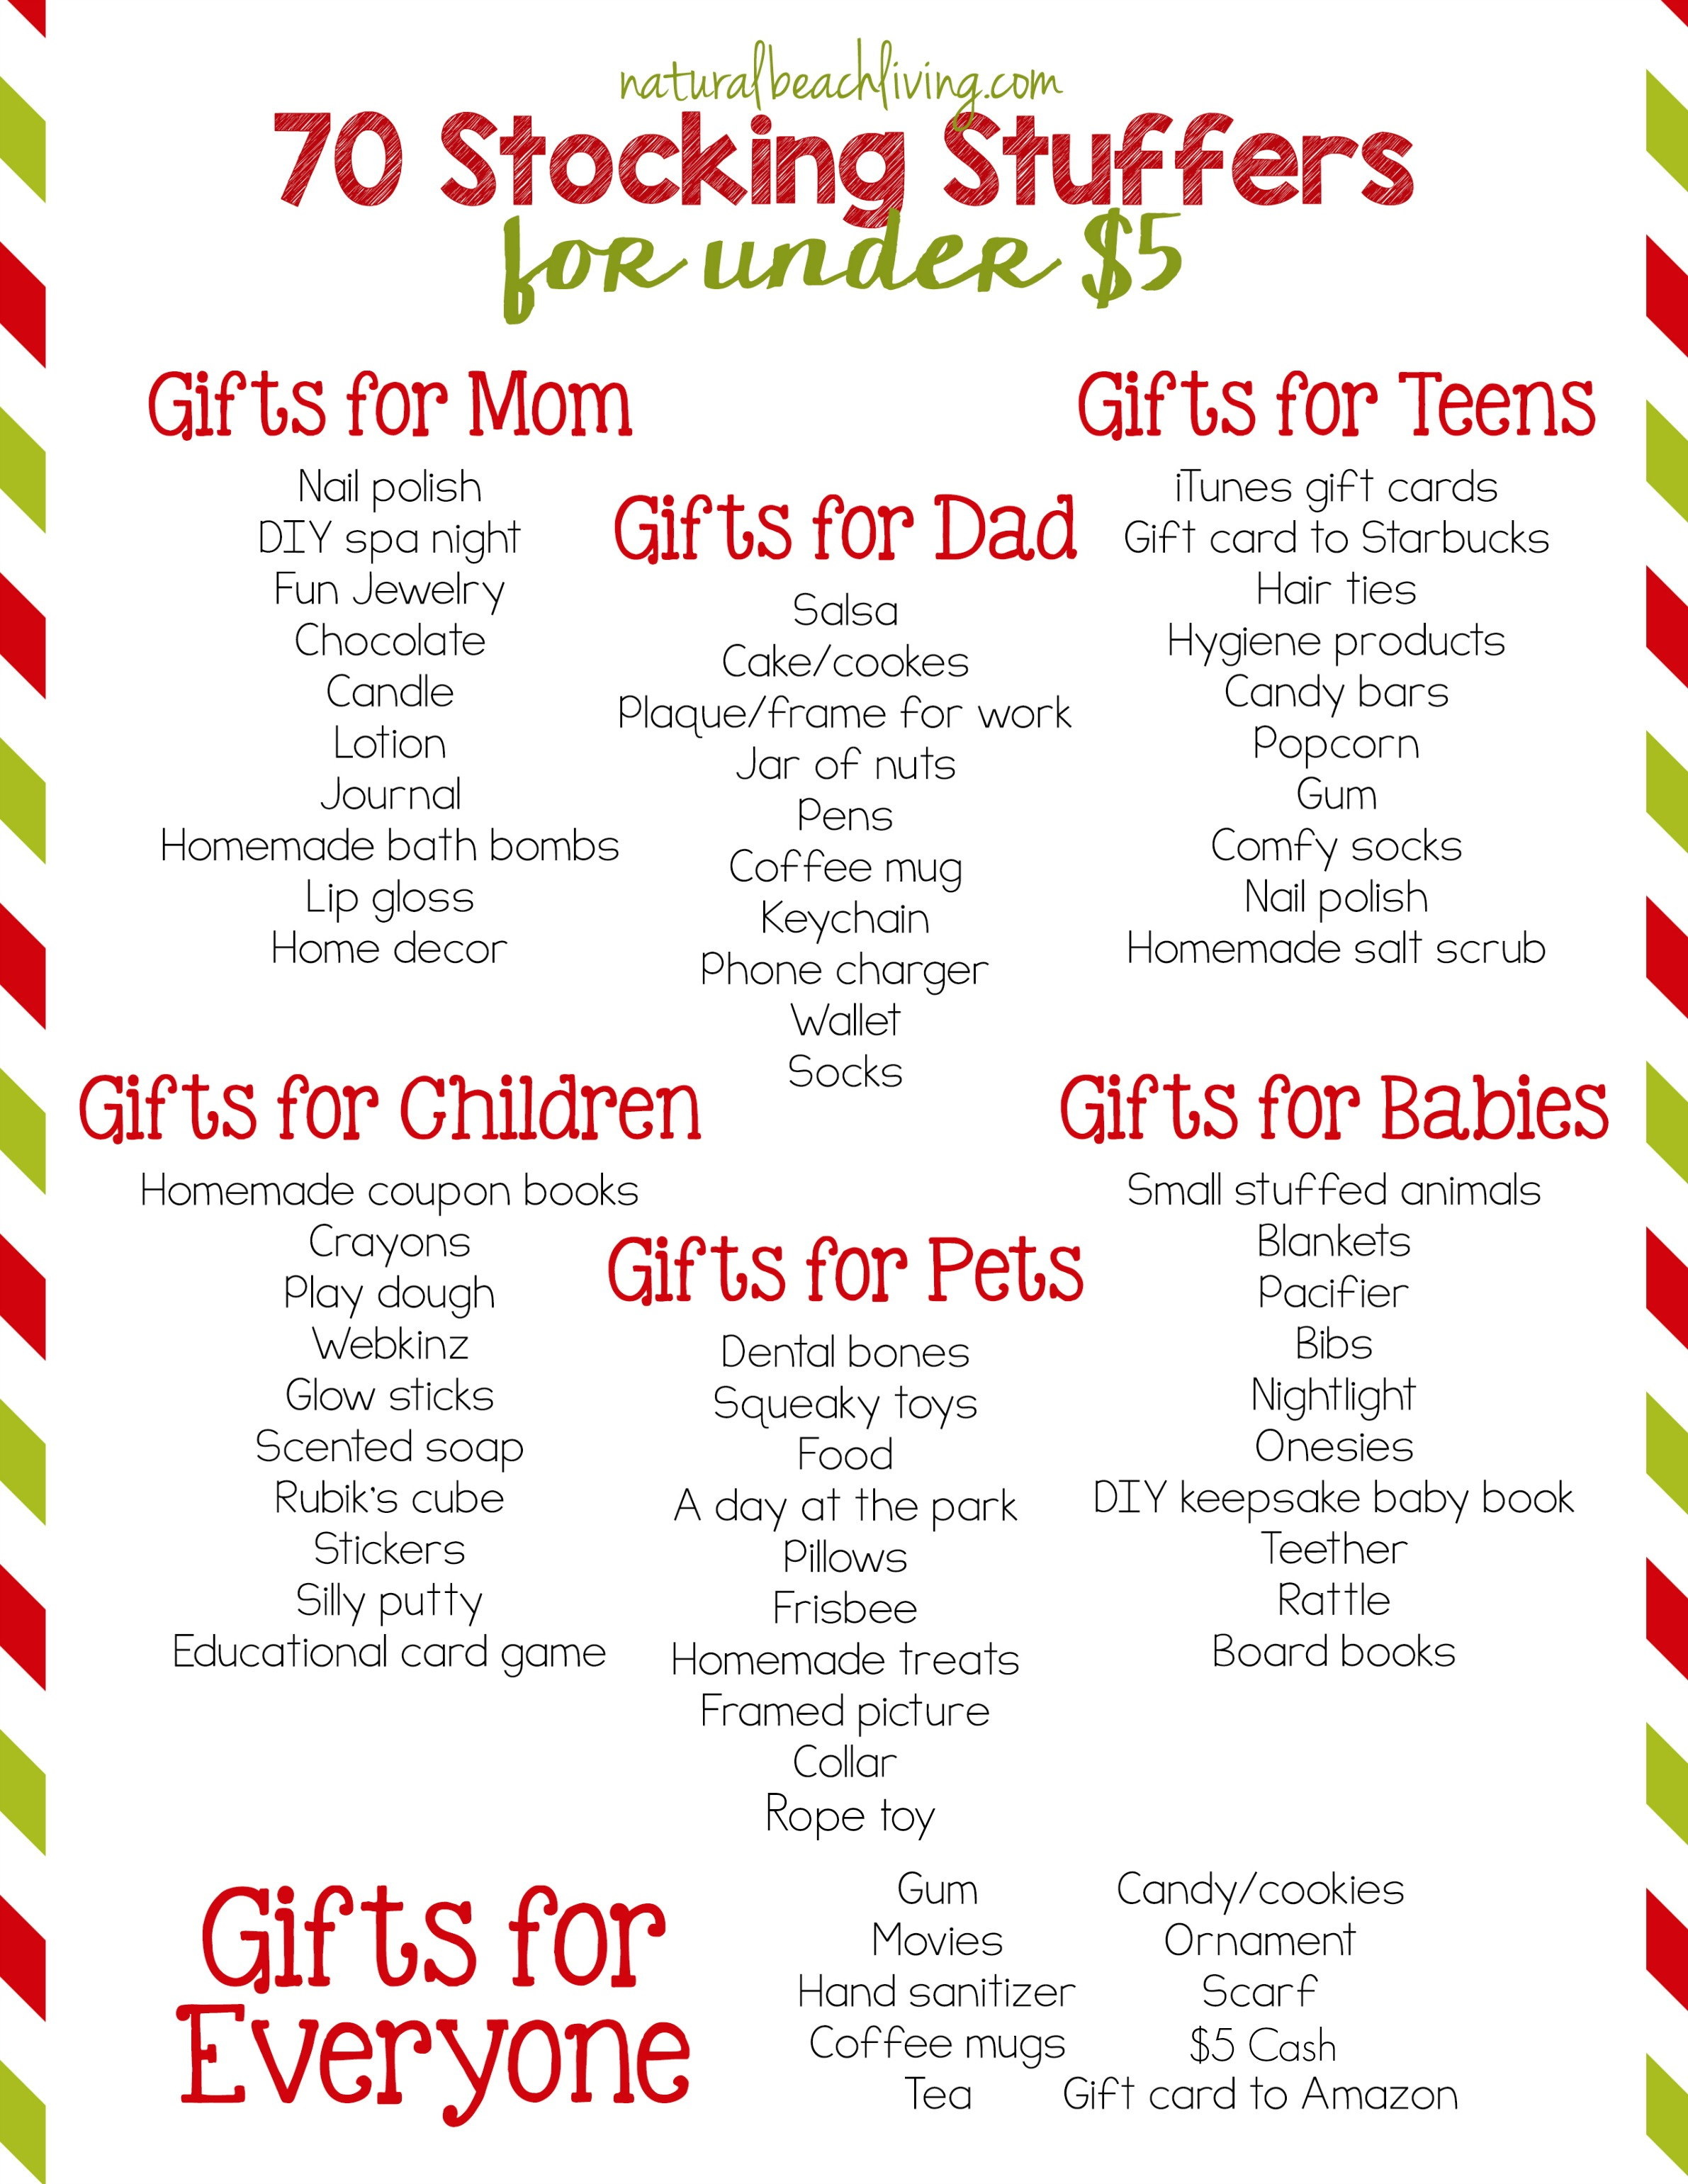 70 Super Stocking Stuffers for Under $5